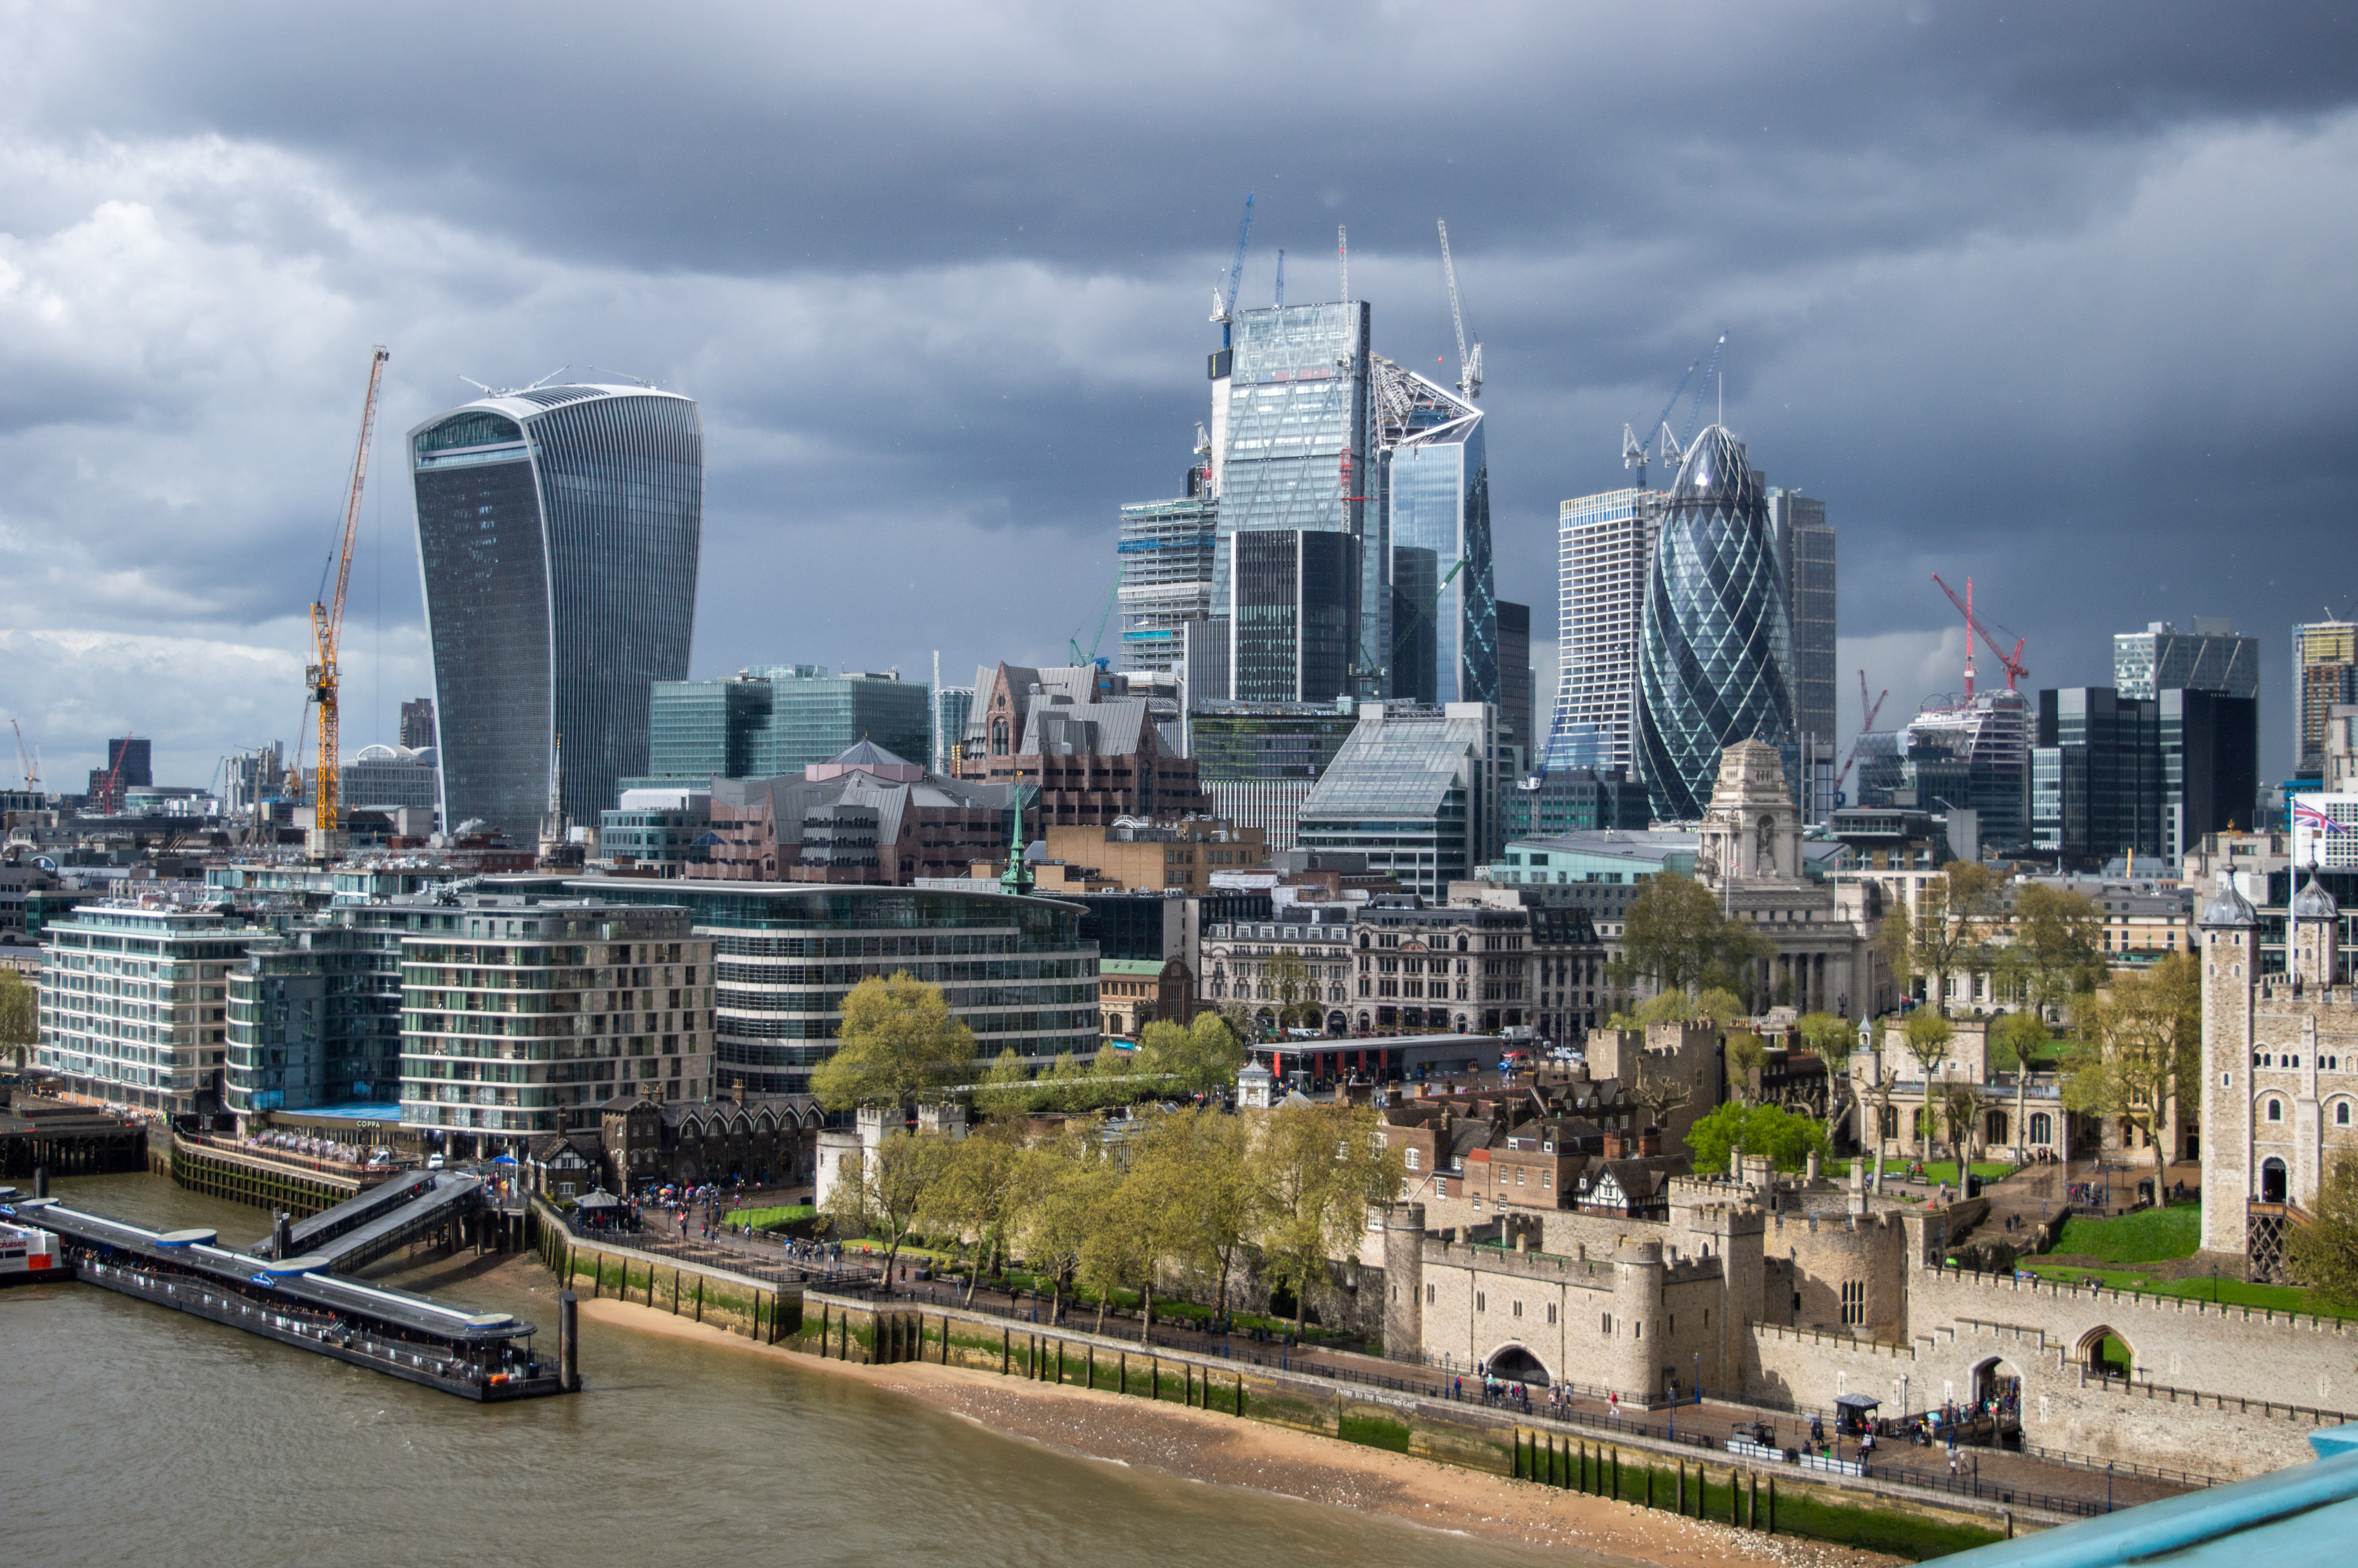 City of London seen from Tower Bridge